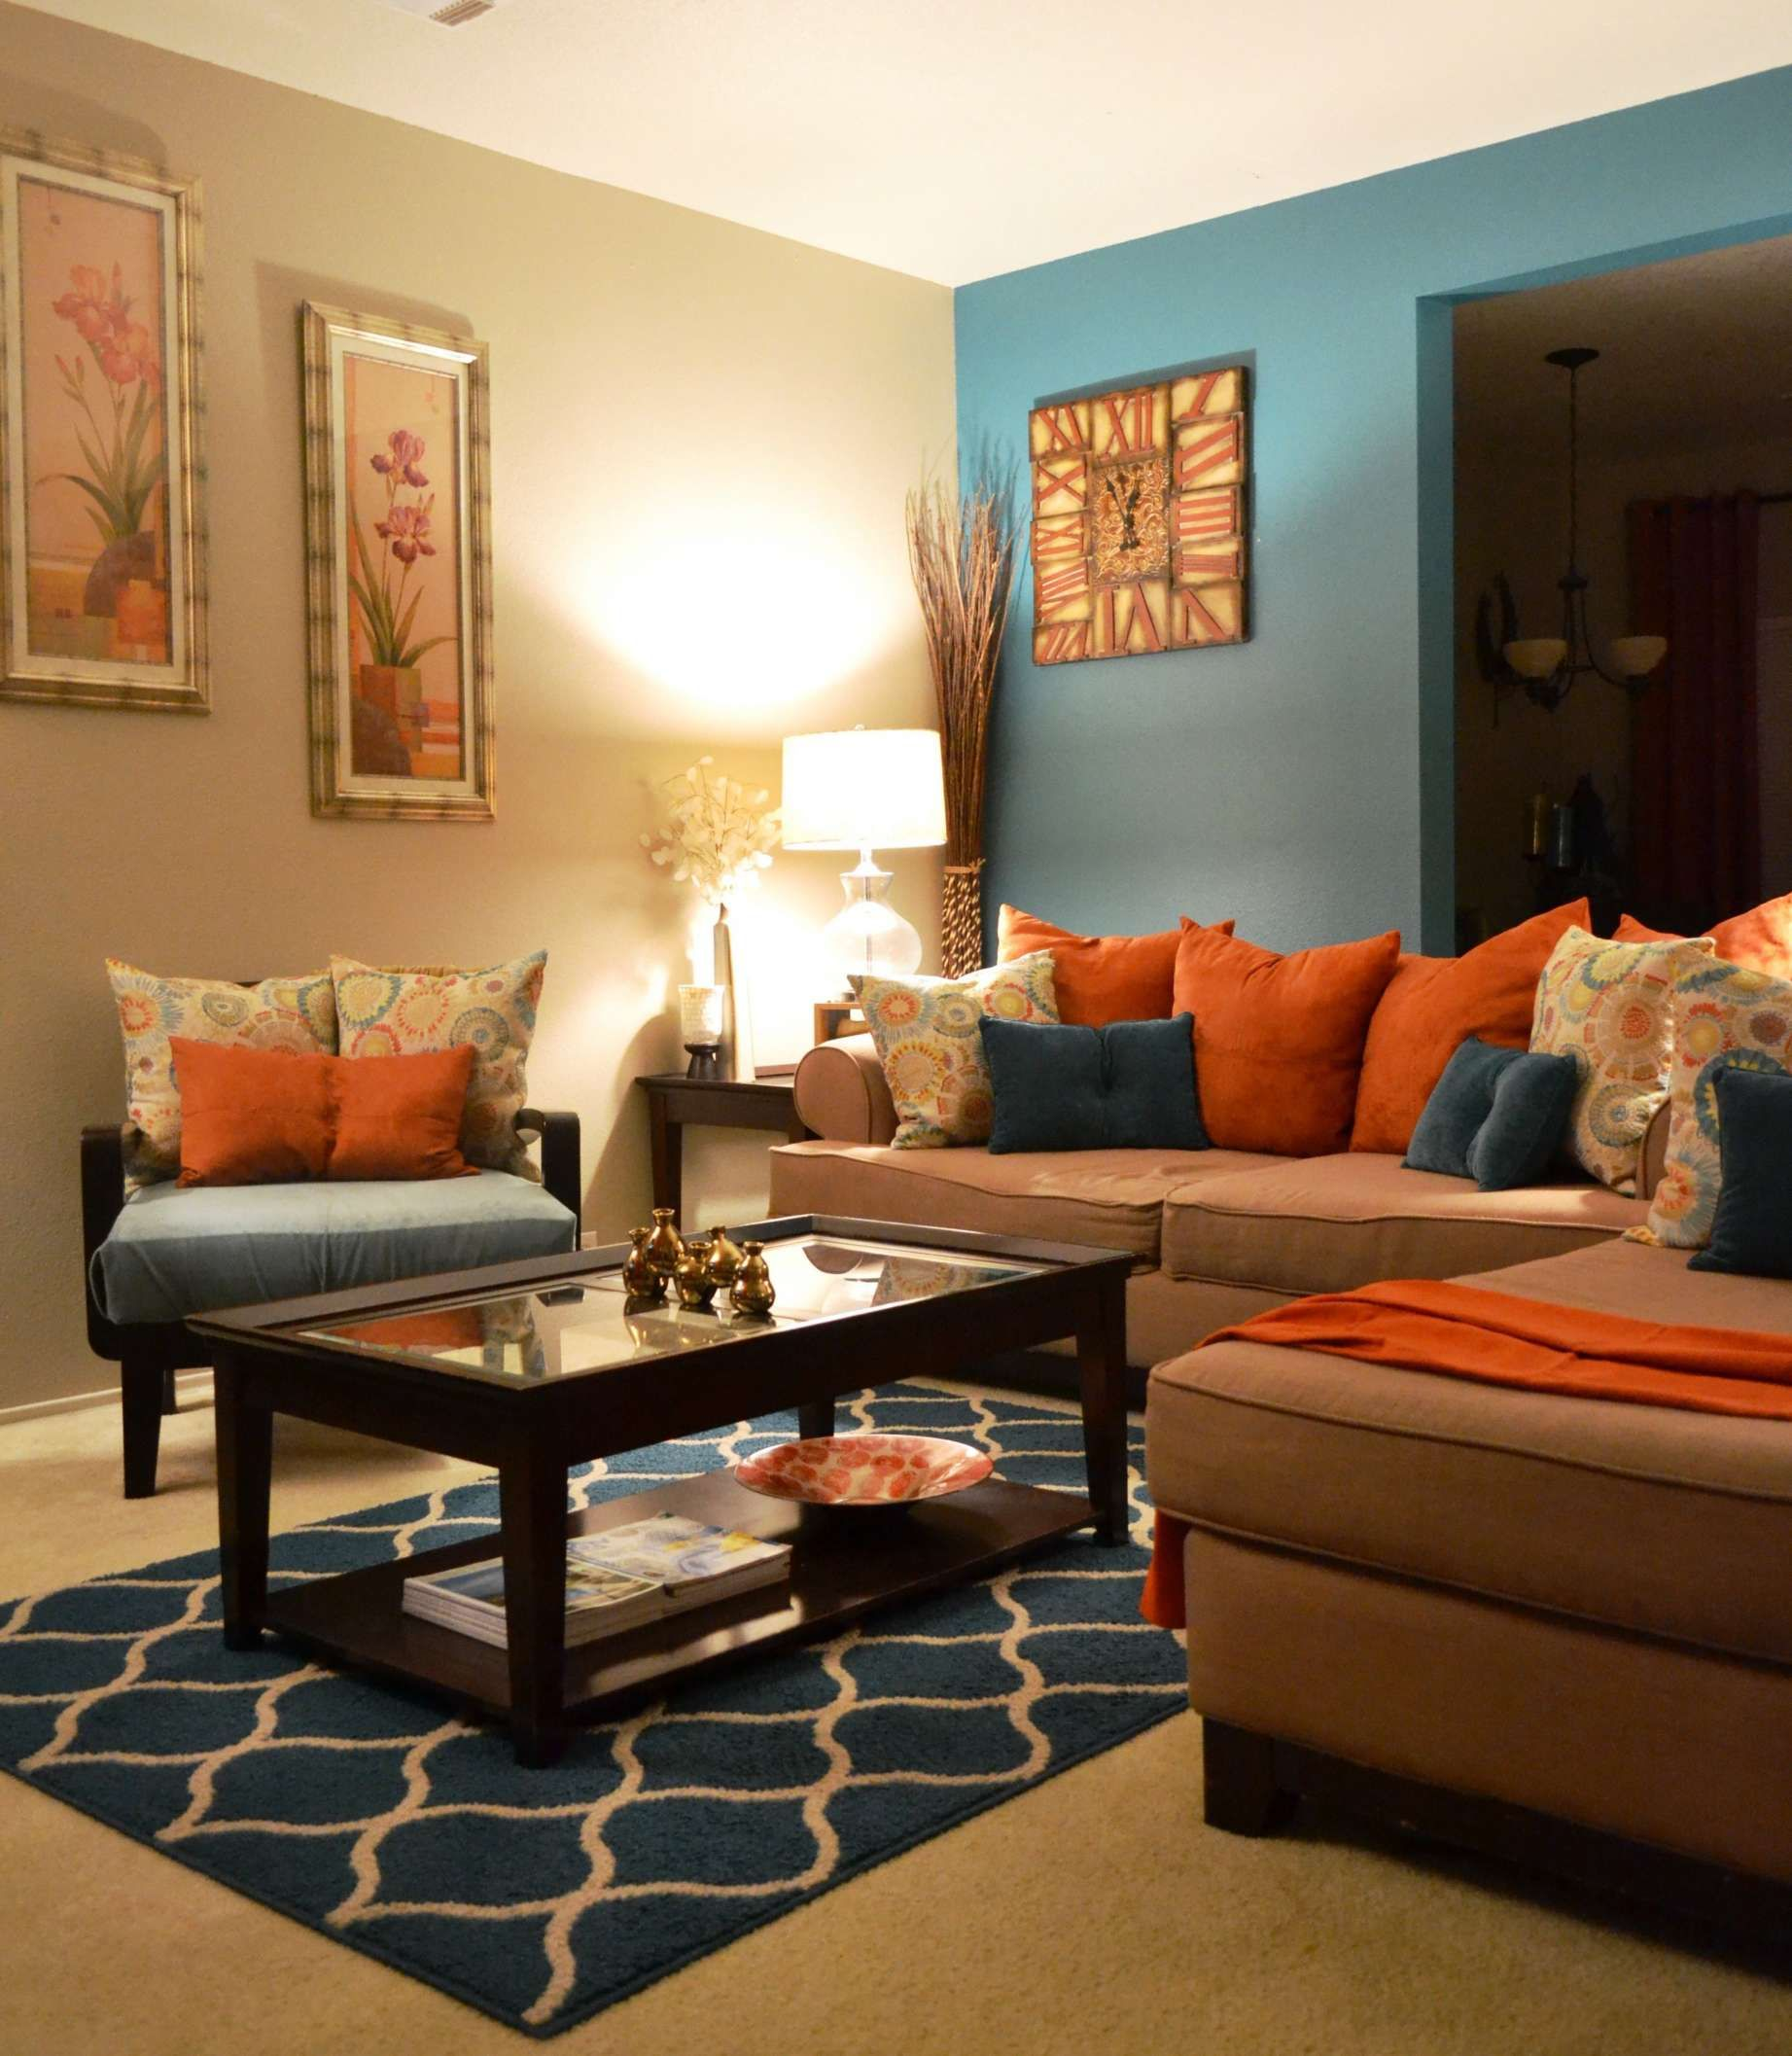 7 Gorgeous Blue And Orange Color Scheme For Living Room Photos Living Room Decor Colors Teal Living Rooms Brown Living Room Decor Blue orange living room